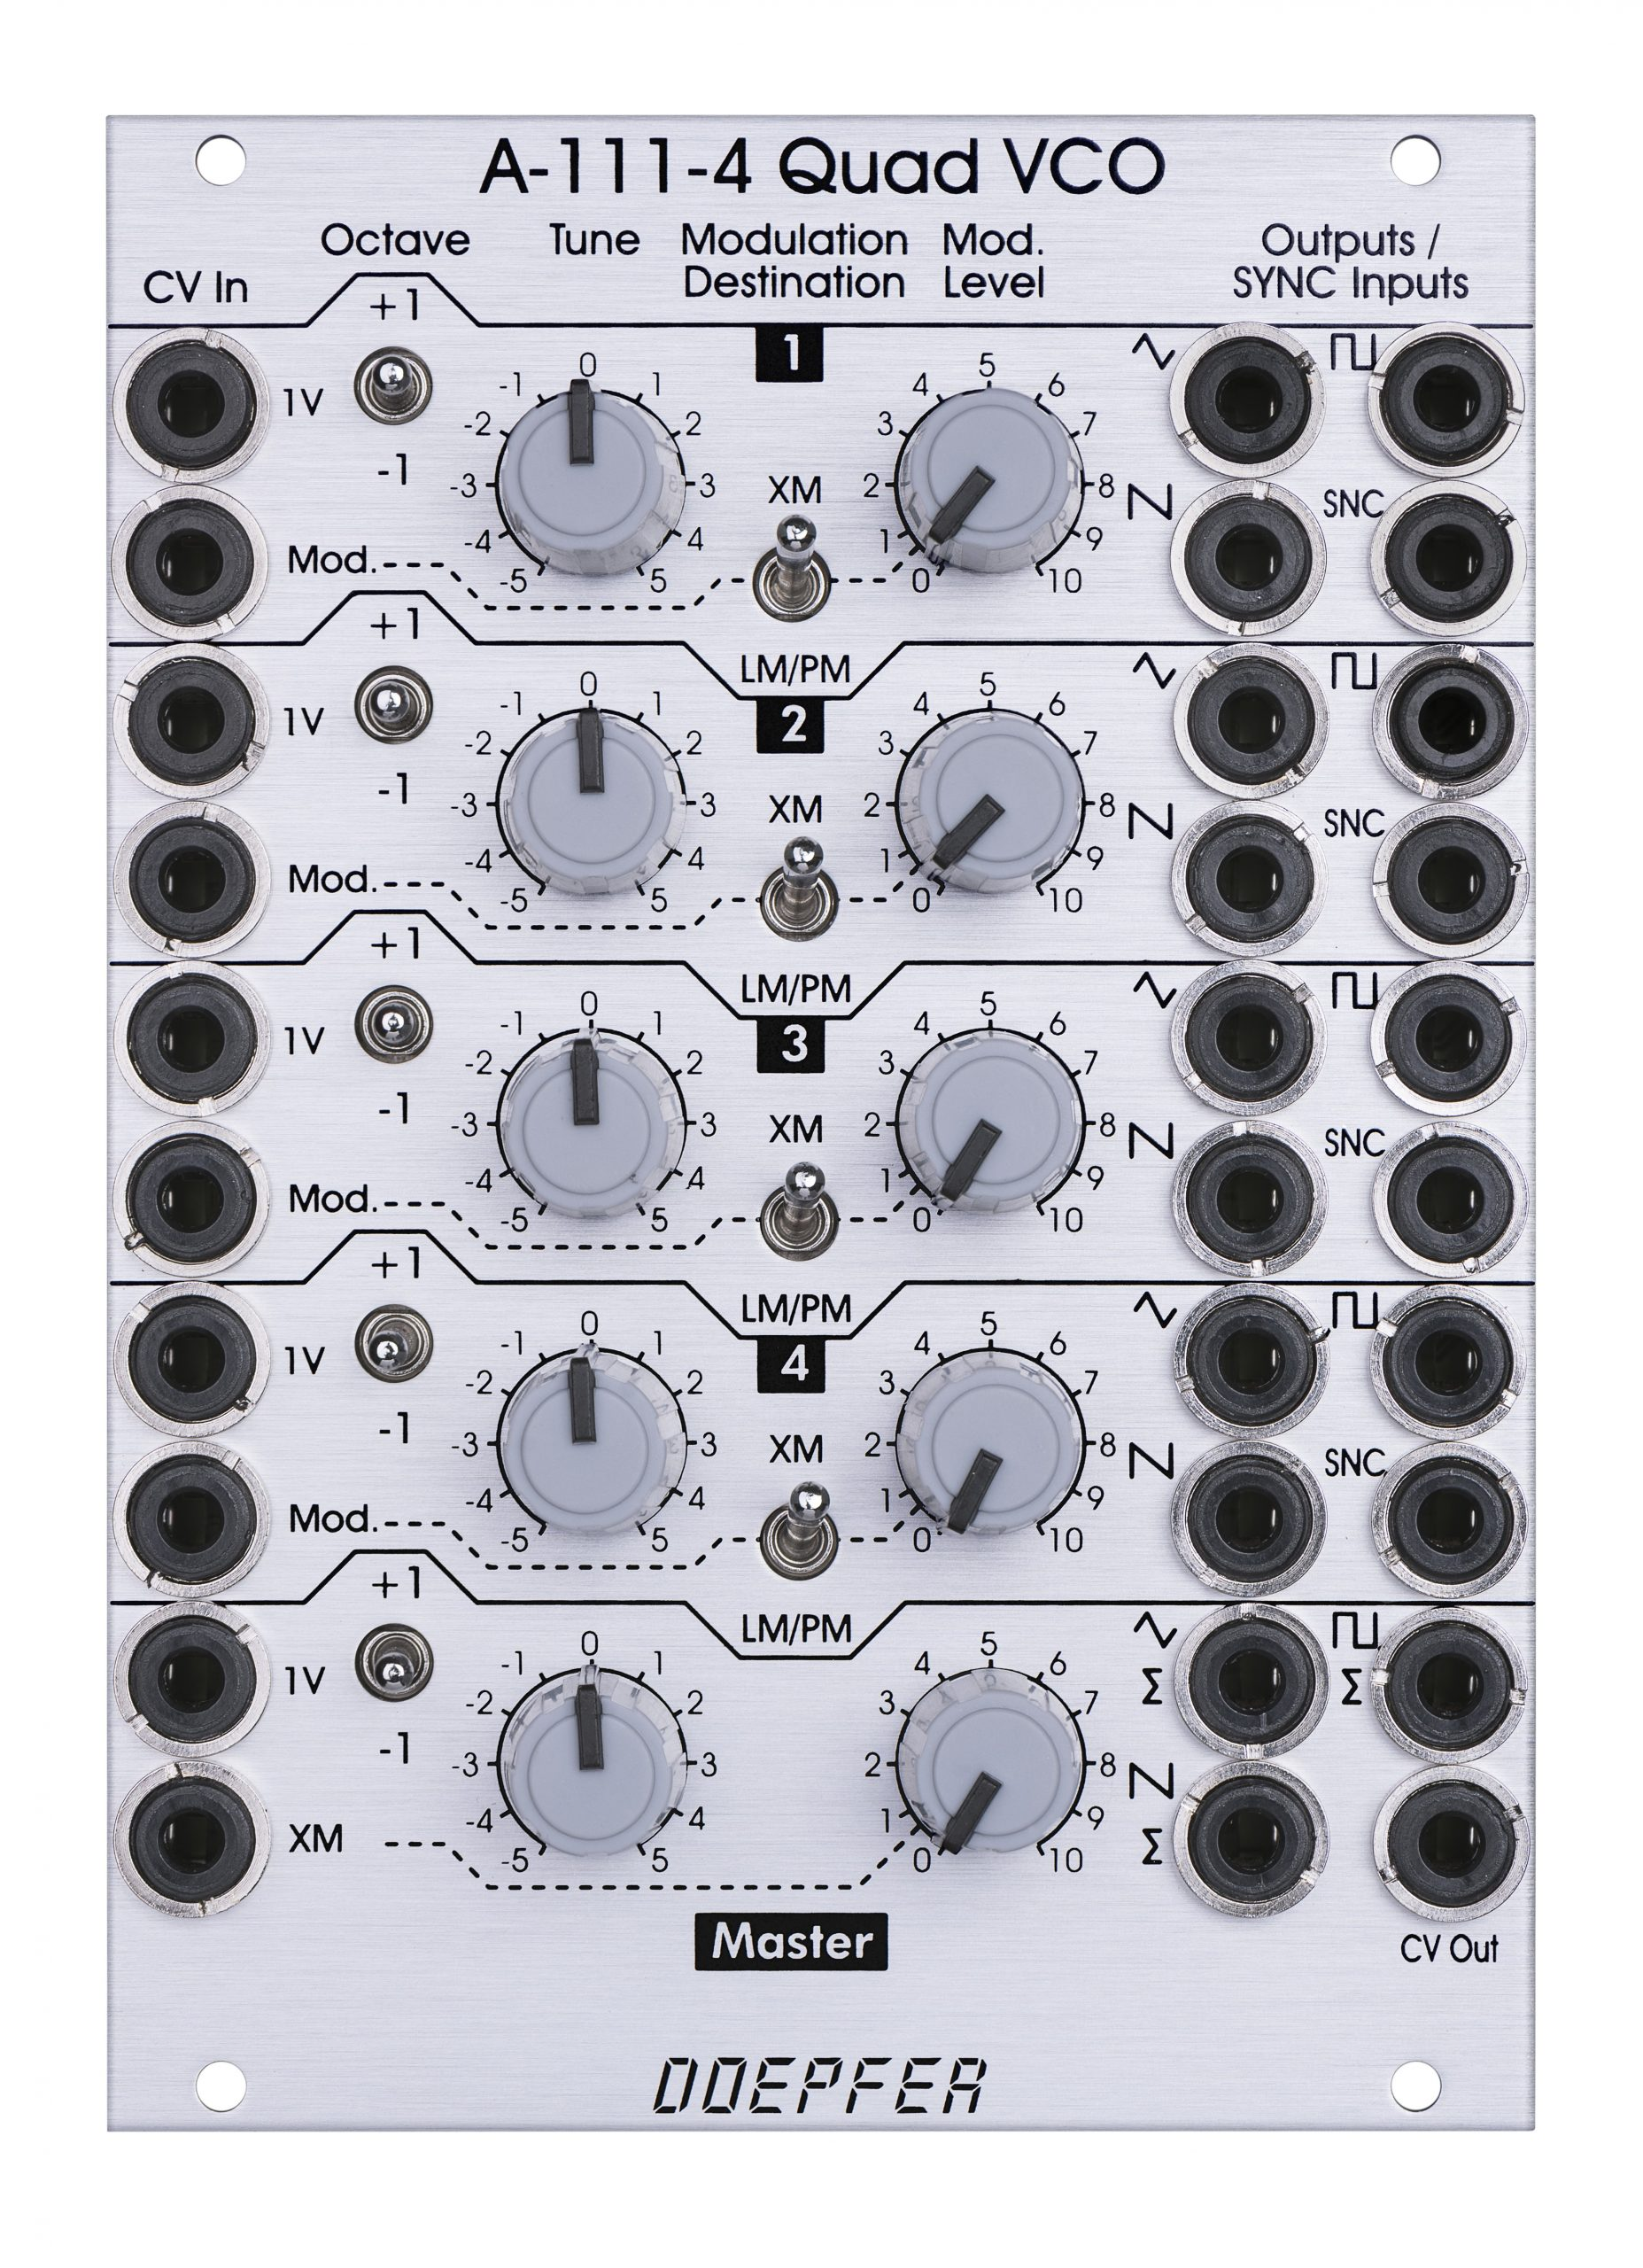 Doepfer dives deeper into industry-standard Eurorack small-format modular system with quirky quintet of polyphonic modules